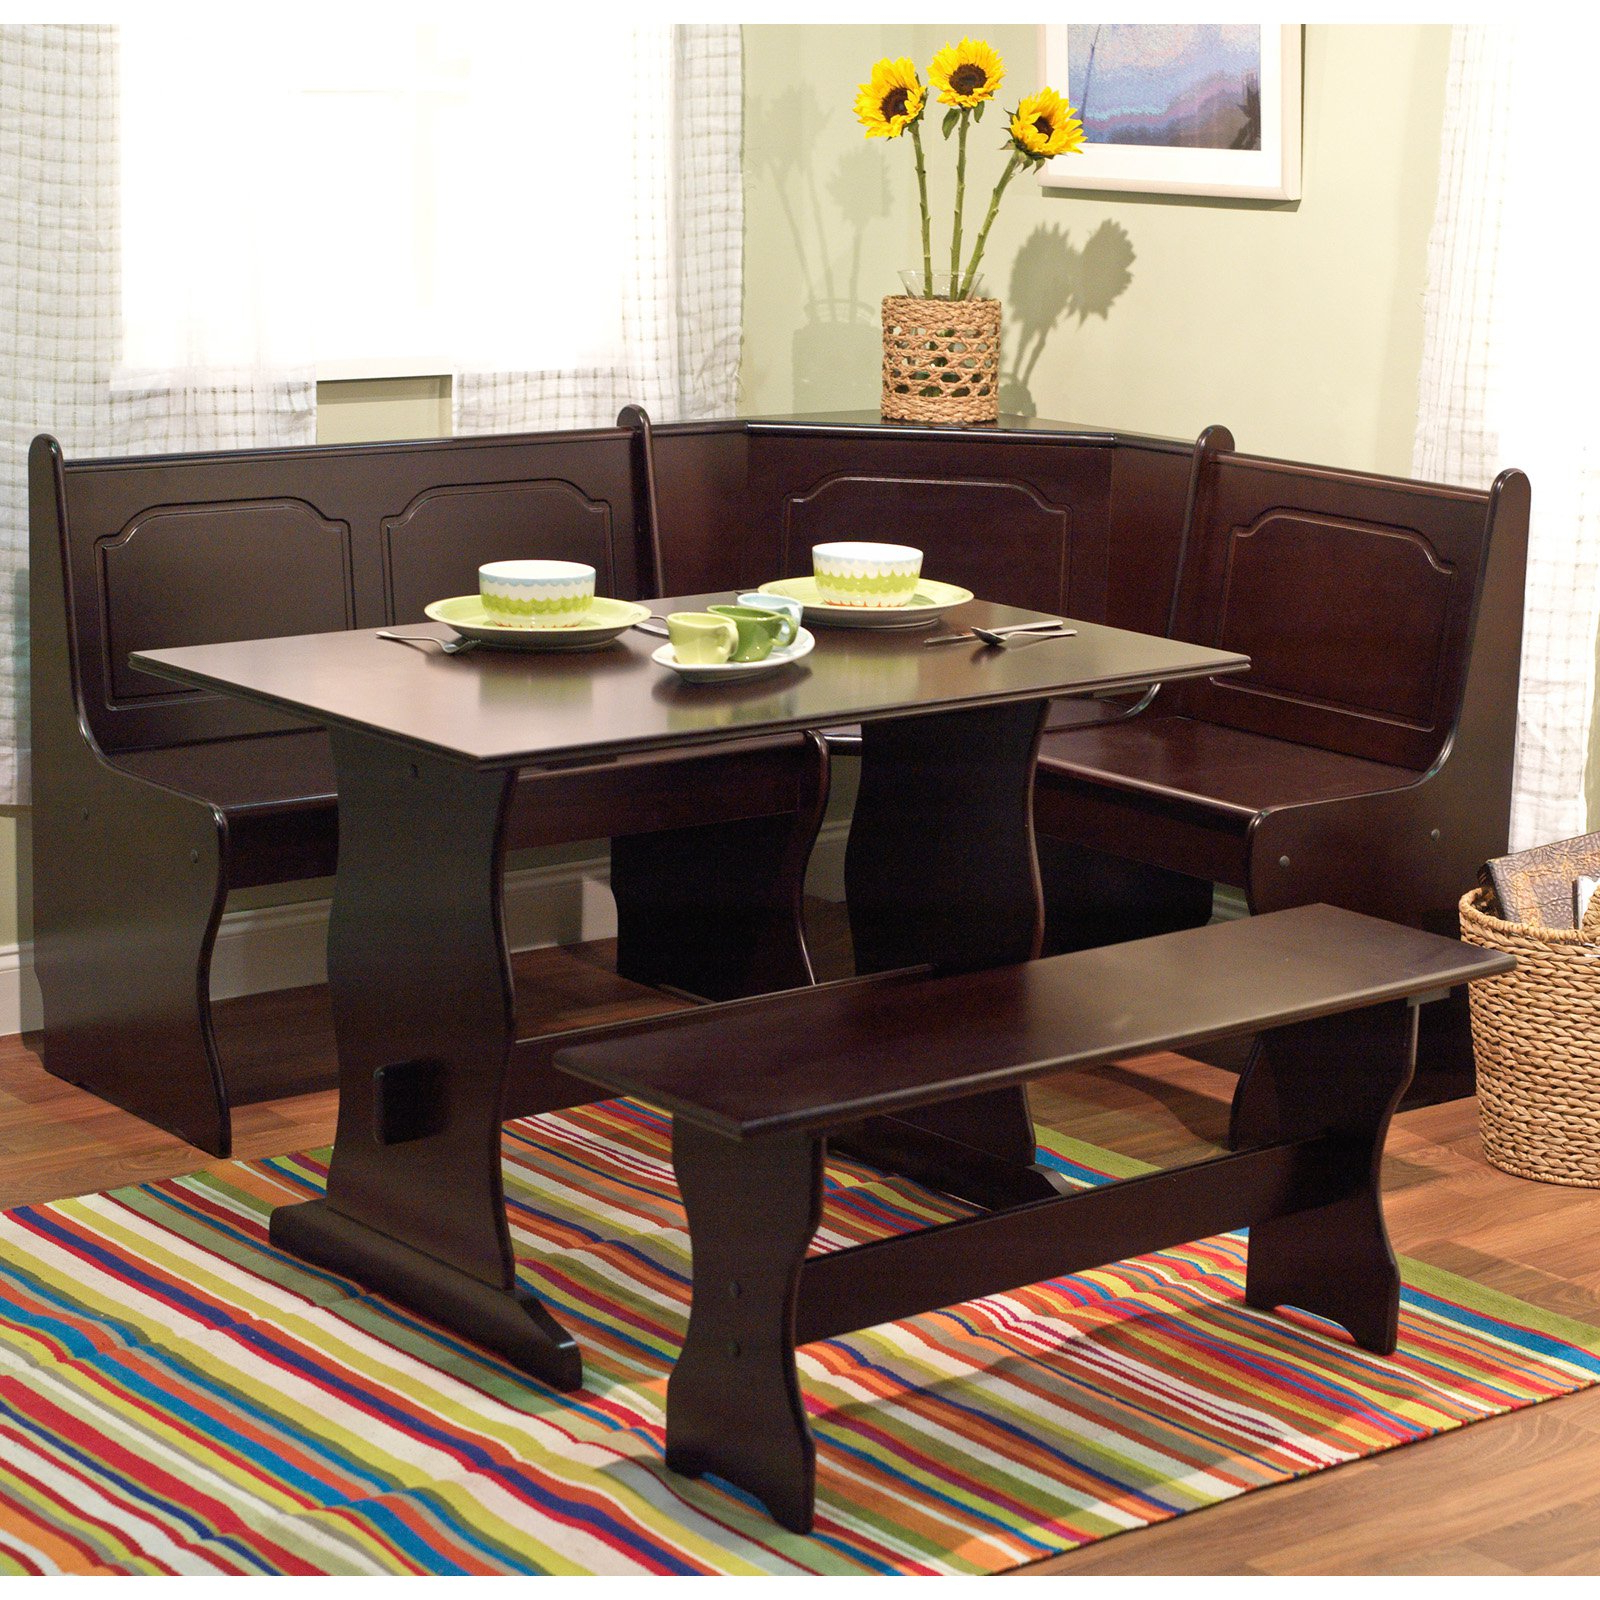 Target Marketing Systems 3 Piece Breakfast Nook Dining Set Intended For Most Current 3 Piece Breakfast Nook Dinning Set (Gallery 4 of 20)